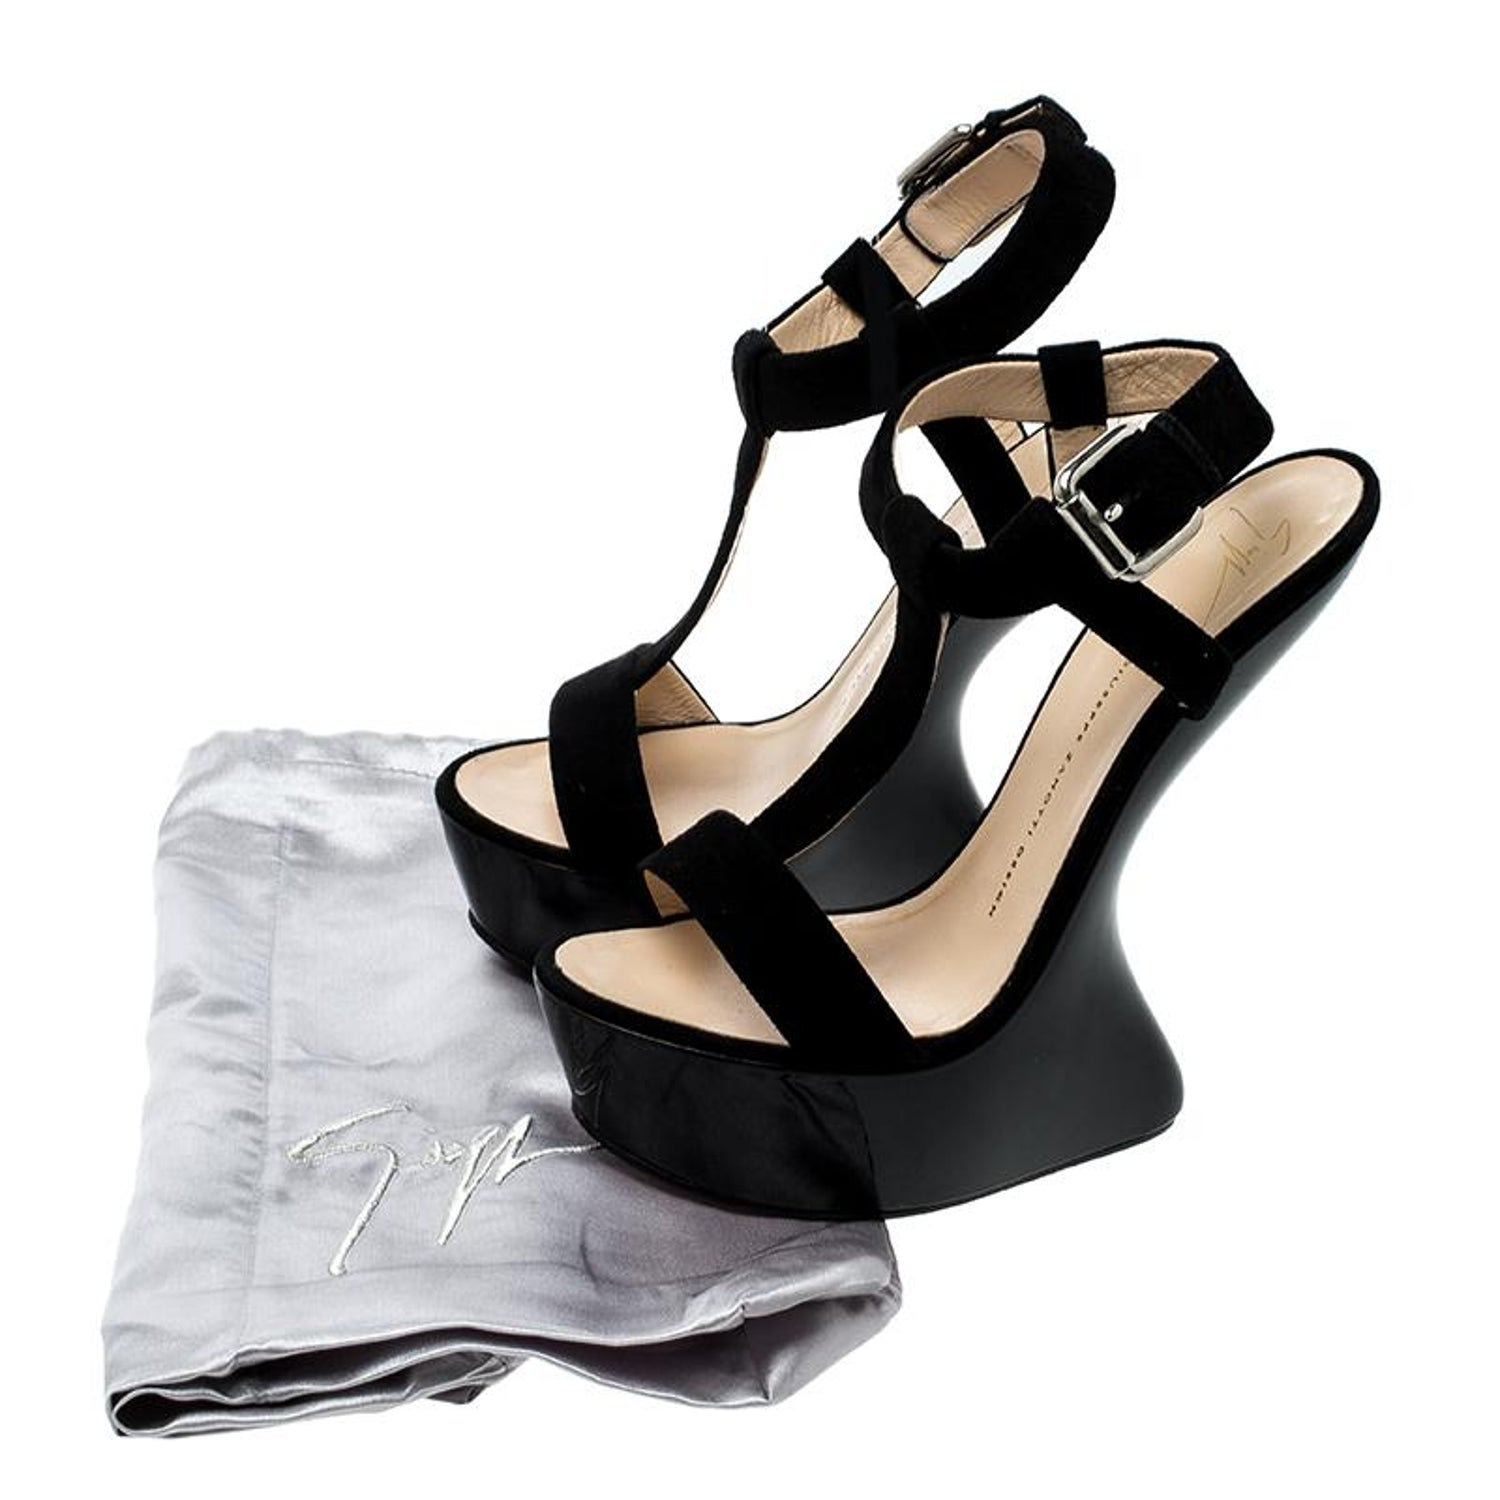 9326ed1a9051 Giuseppe Zanotti Black Suede T Strap Platform Heel Less Wedge Sandals Size  40 For Sale at 1stdibs